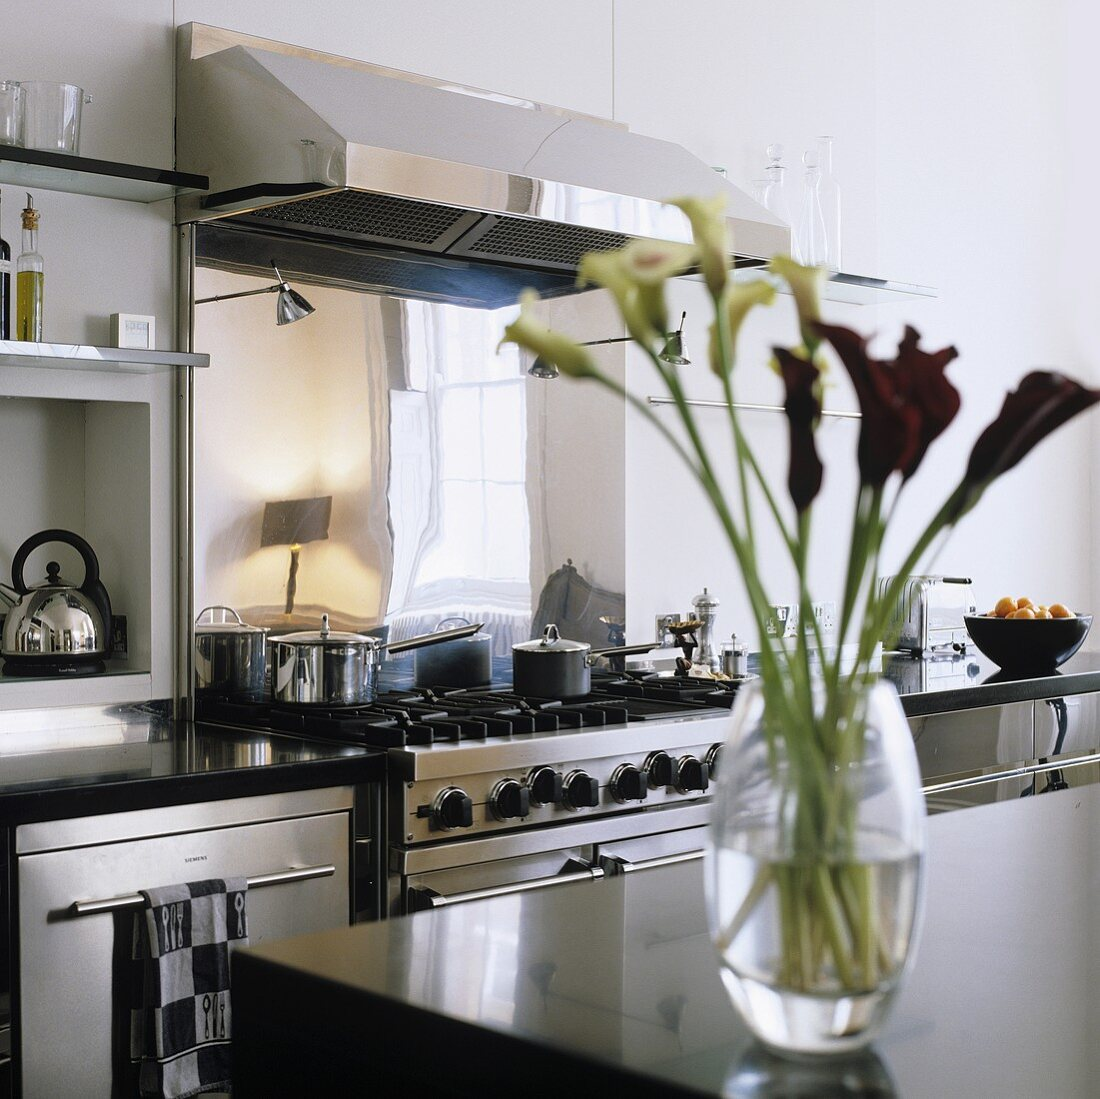 A stainless steel cooker with an extractor fan and a vase of lilies